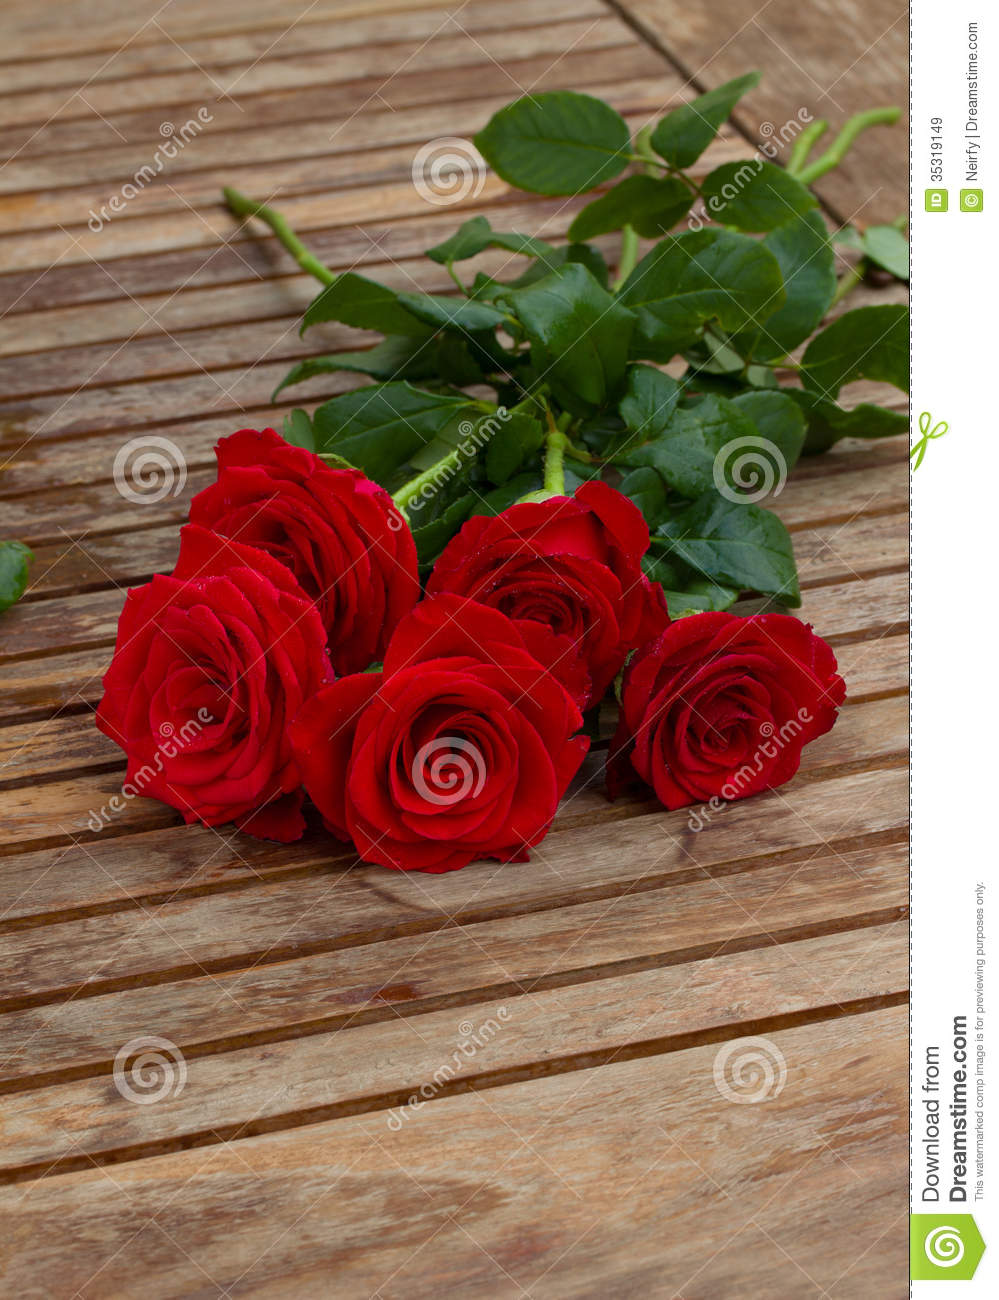 Bouquet of red roses on table stock image image of droplet floral bouquet of red roses on table izmirmasajfo Gallery